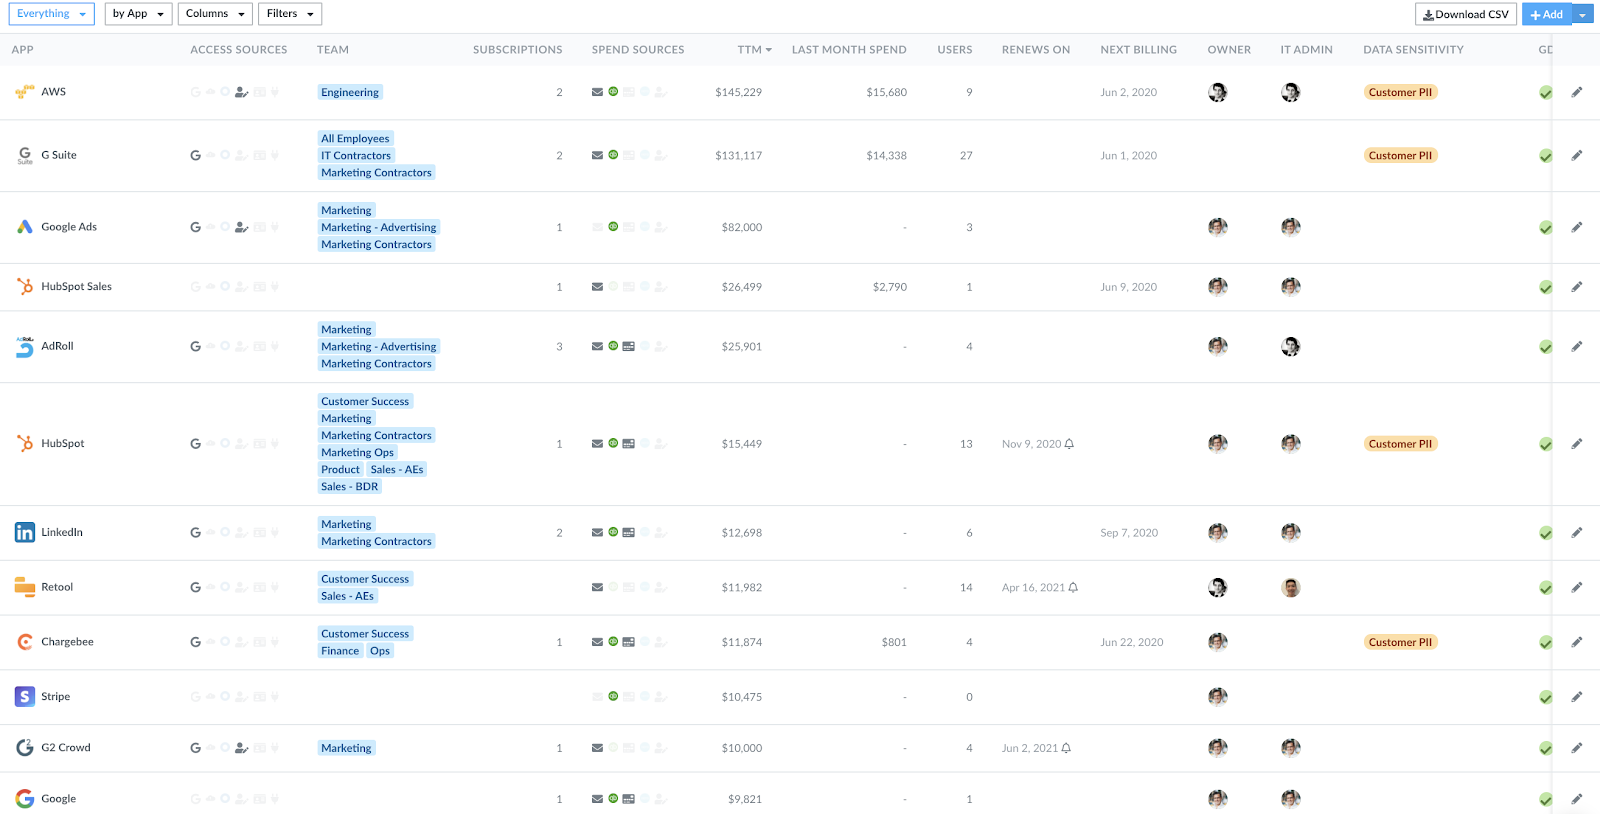 Top-Down SaaS Management Tool View